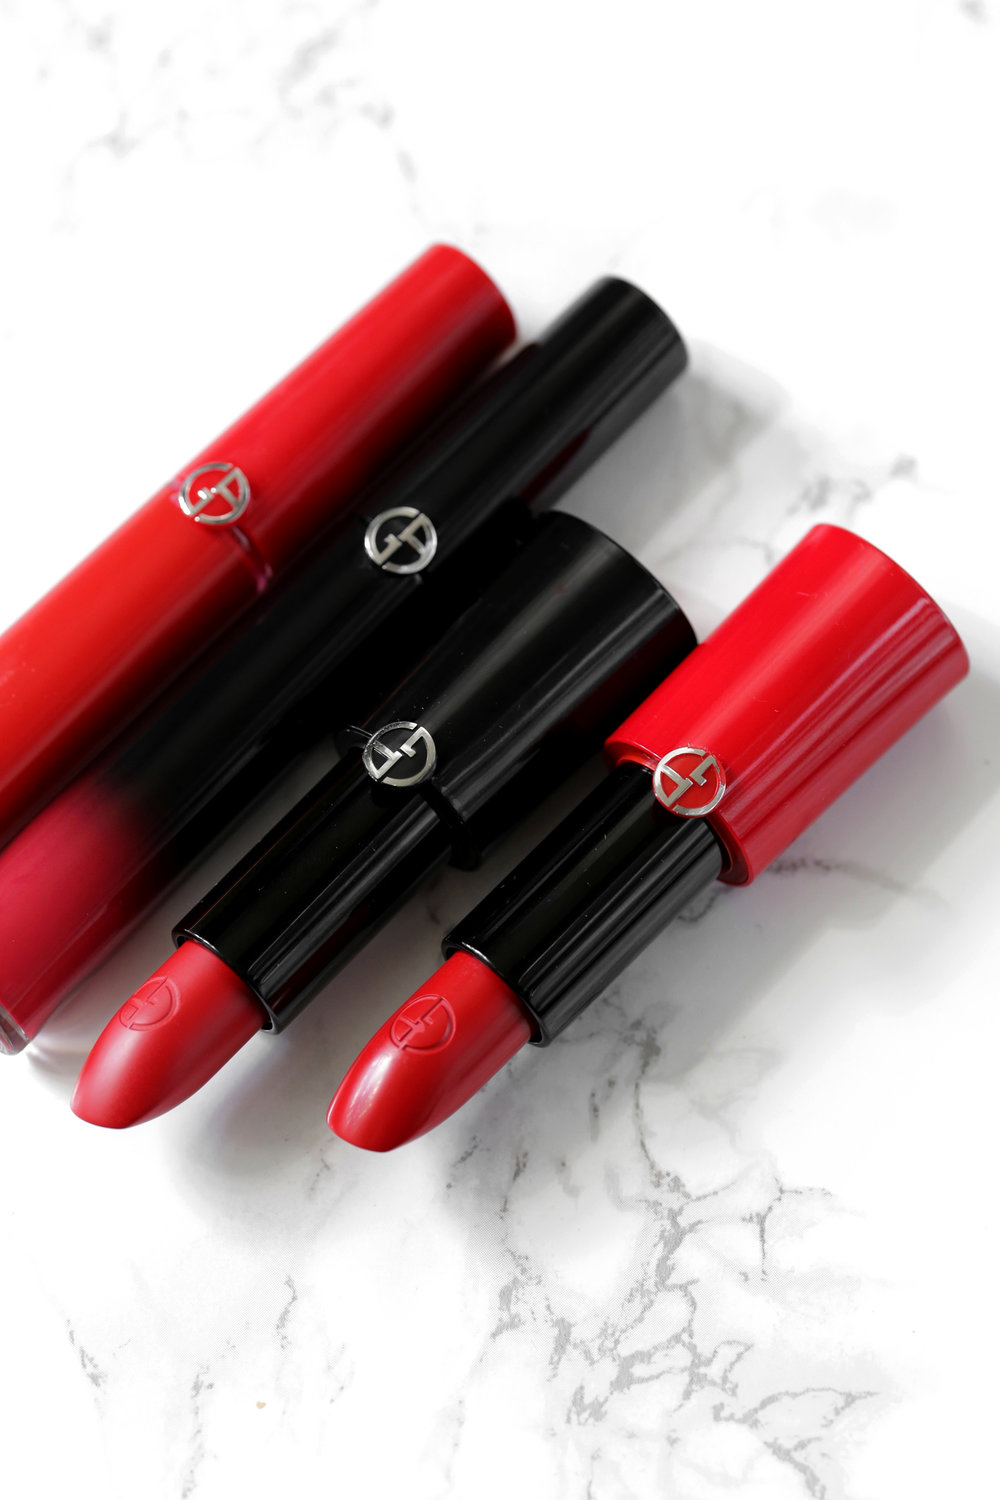 GIVENCHY 400 red lipstick - LIPSICK.ME - lipstick beauty blog_2532.jpg